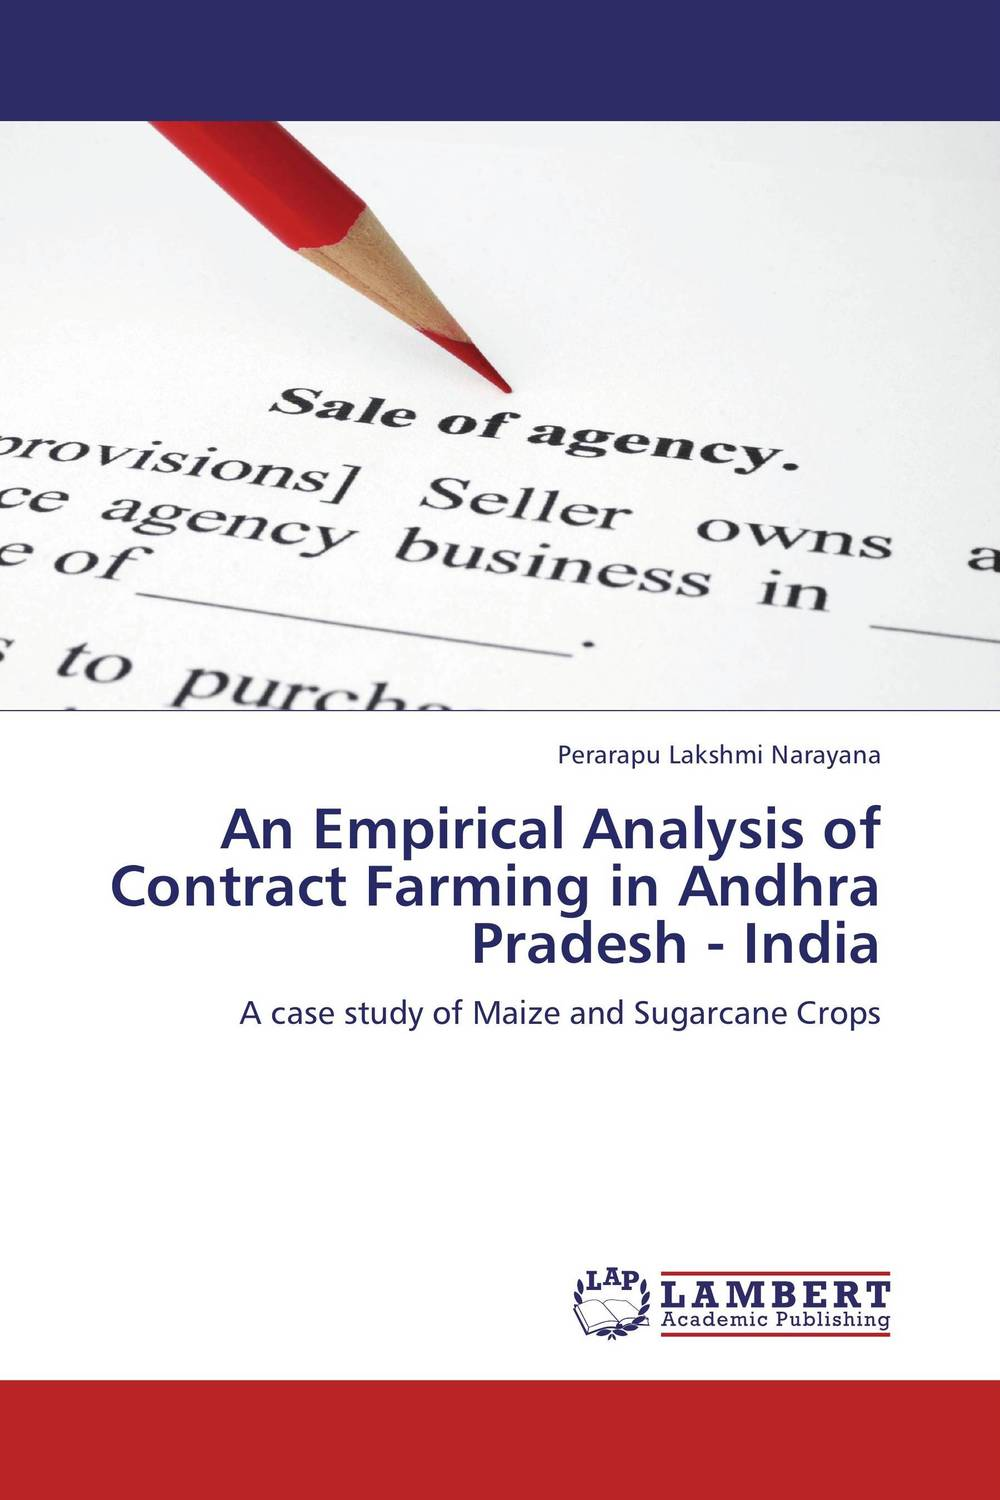 An Empirical Analysis of Contract Farming in Andhra Pradesh - India financial performance analysis of general insurance companies in india